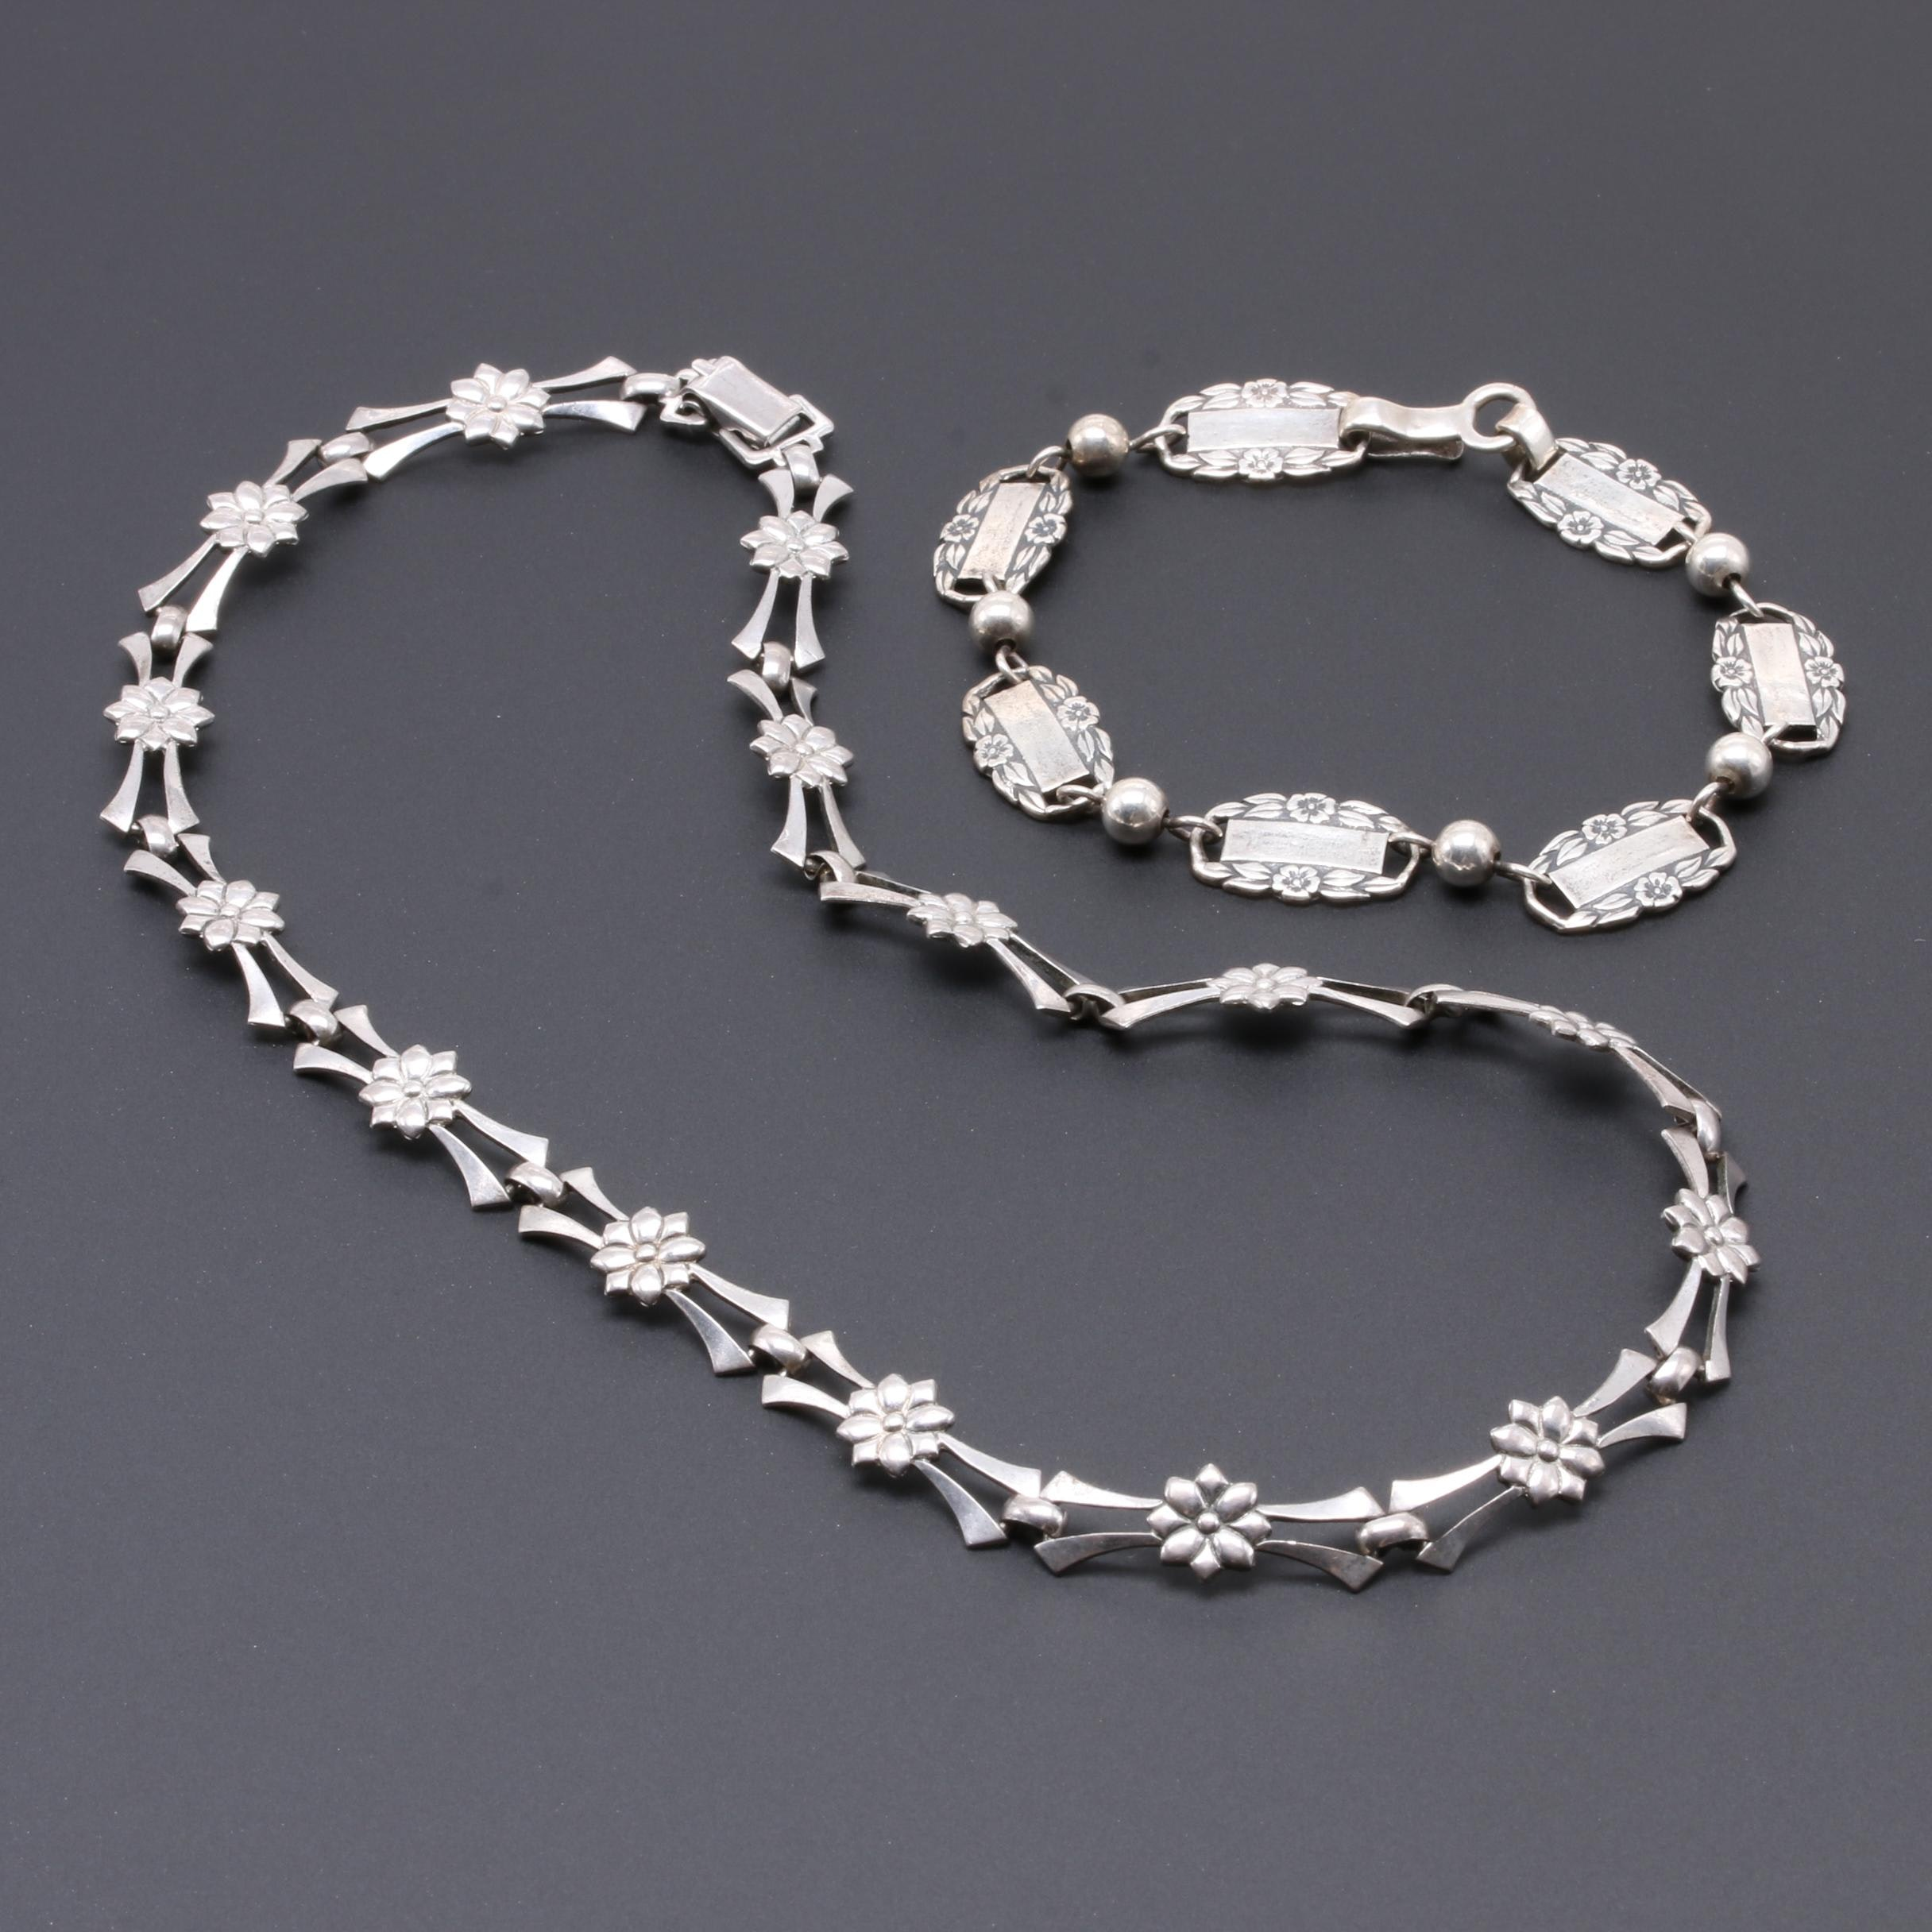 Sterling Silver Necklace and Bracelet with Floral Motifs